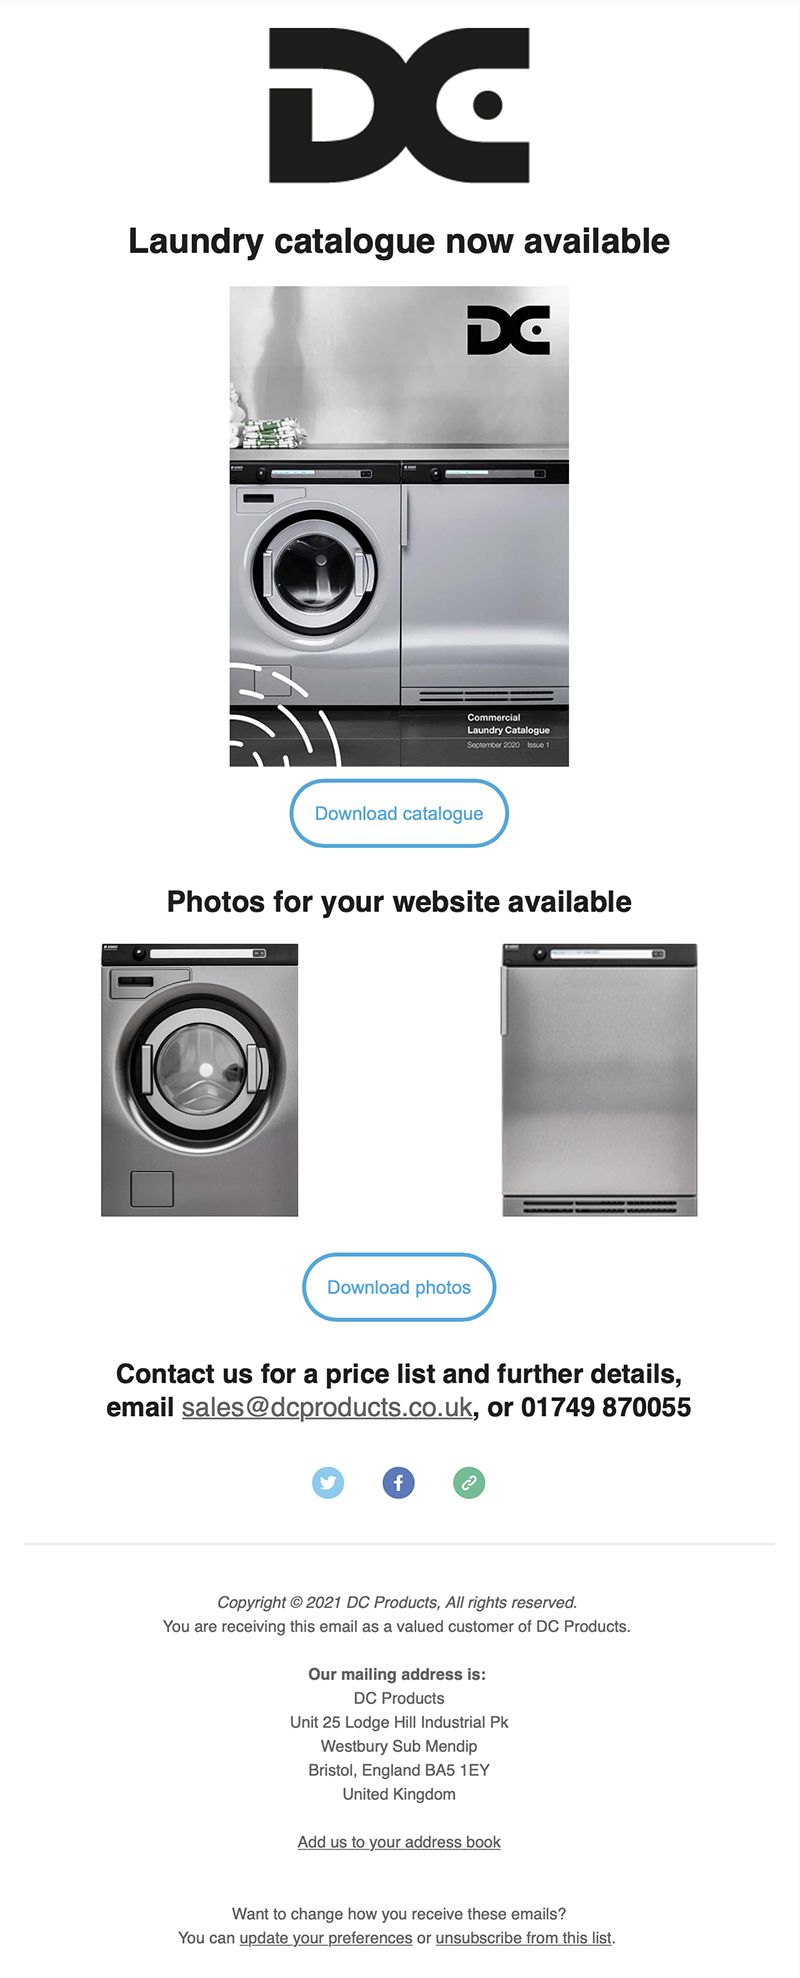 Image showing a laundry email